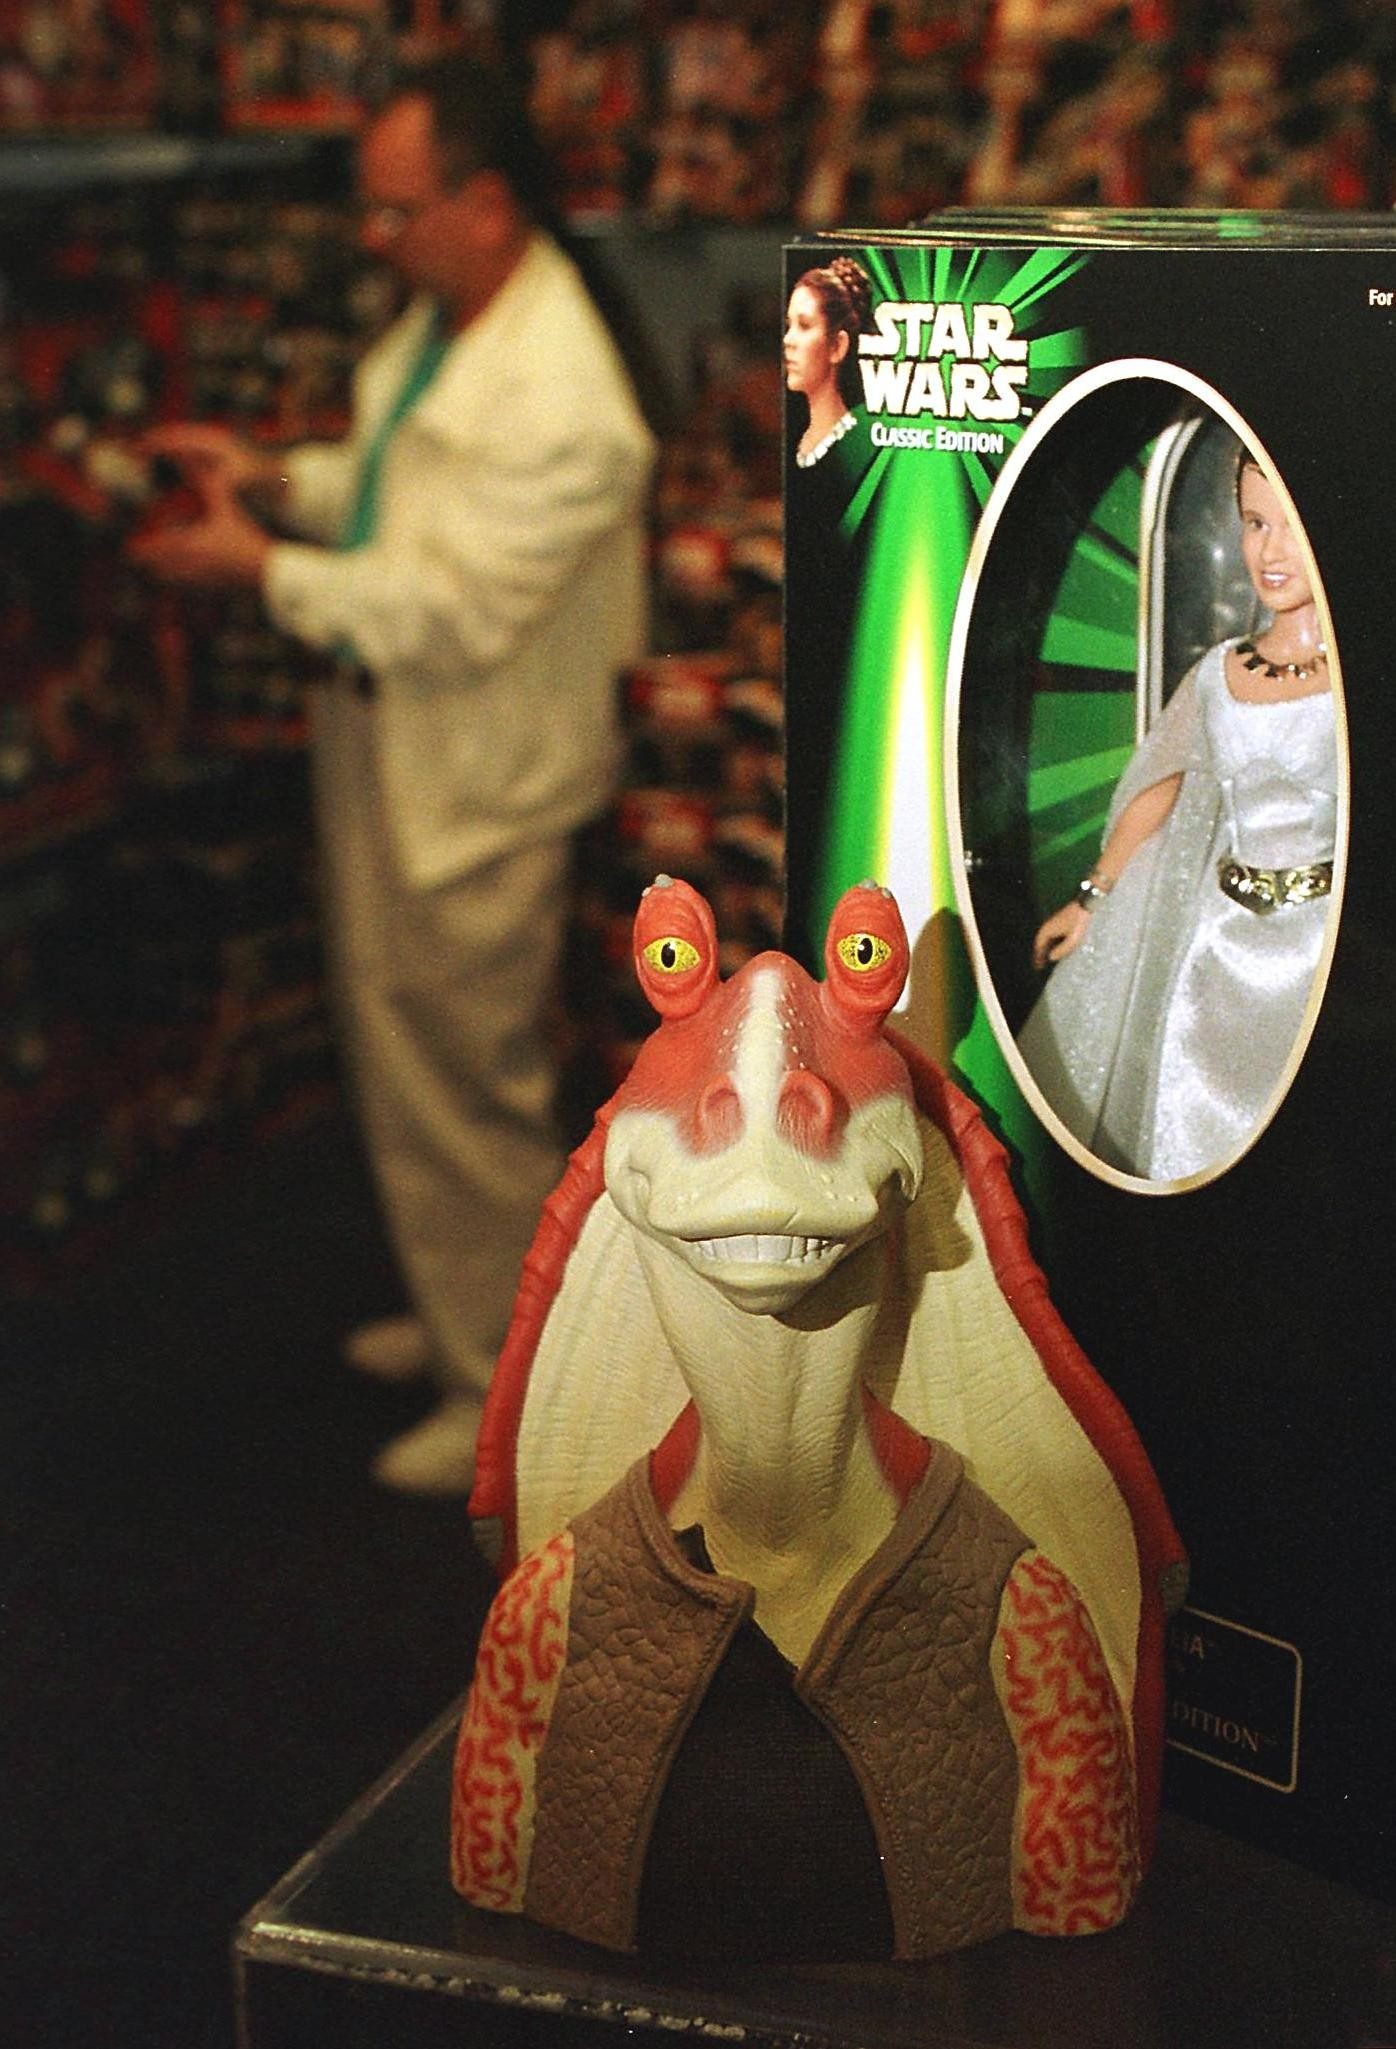 GARDEN CITY, :  A figure of the character called Jar Jar Binks (C) from the new Star Wars movie The Phantom Menace sits next to a figure of Princess Leia (R) from the original Star Wars trilogy in a display at FAO Schwartz 07 May 1999 in Garden City, NY. FAO Schwartz filled an entire room with toys from both the new movie as well as the original series when the new figures were released 03 May 1999 . AFP PHOTO/Matt CAMPBELL (Photo credit should read MATT CAMPBELL/AFP/Getty Images)